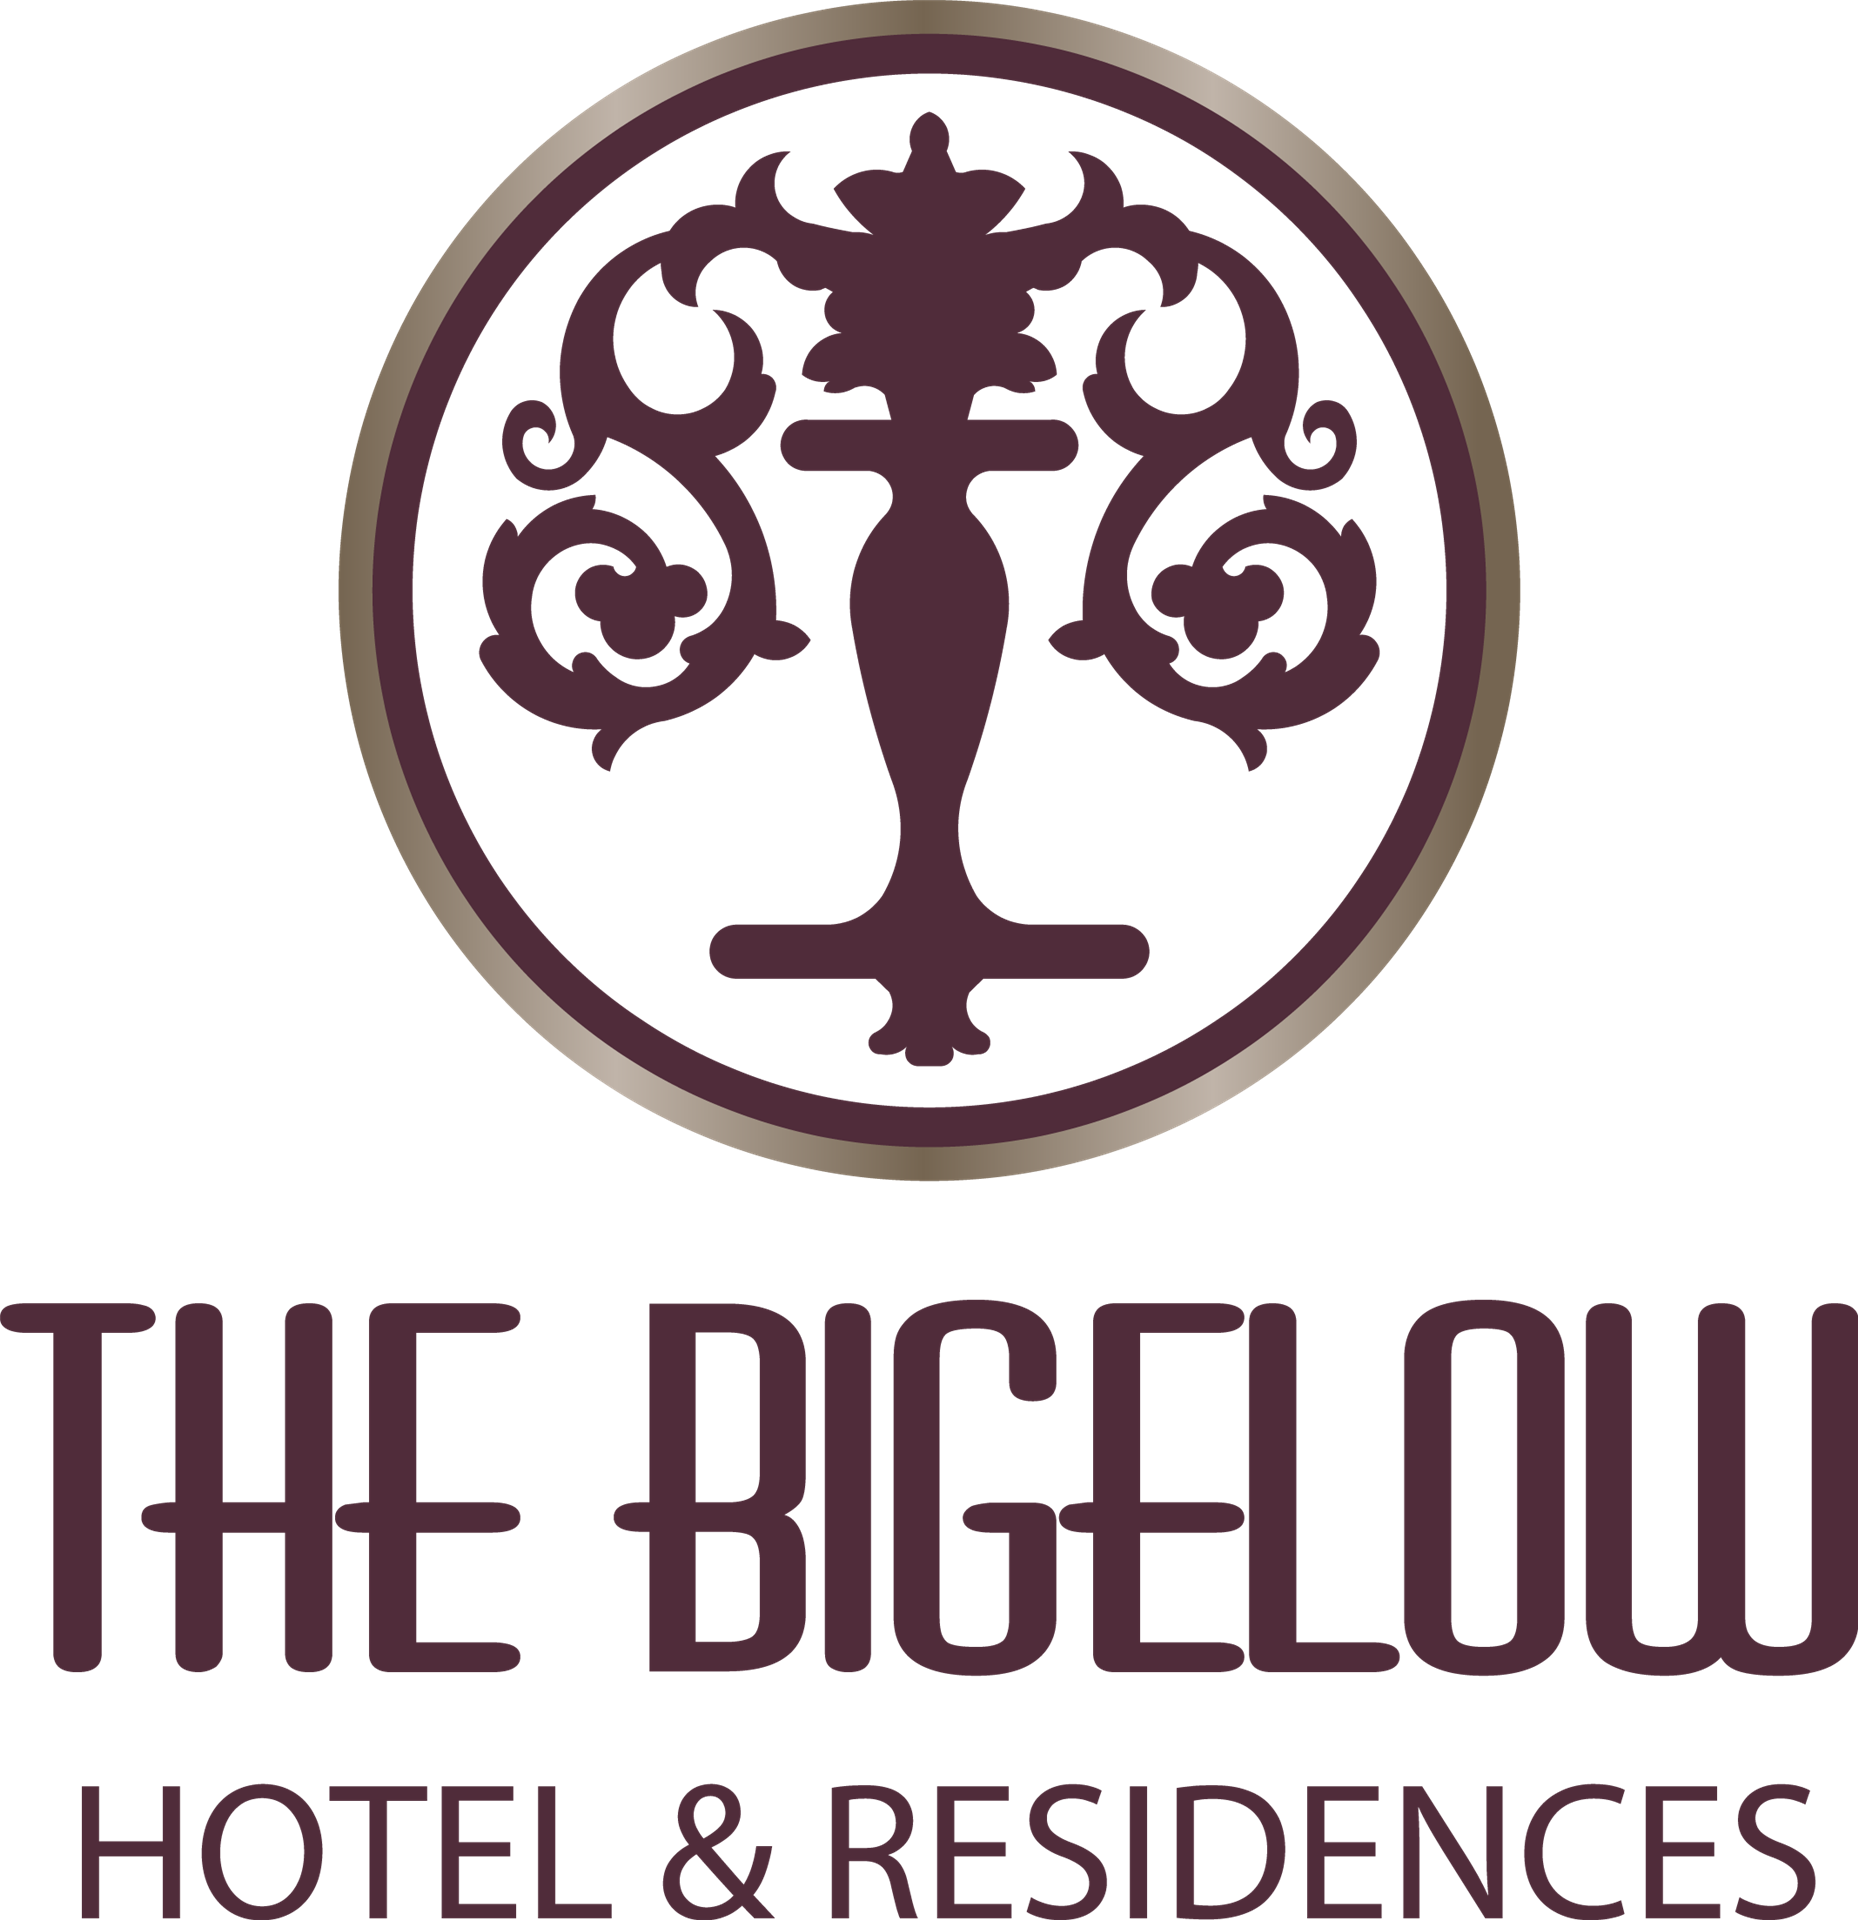 Bigelow Hotel and Residences